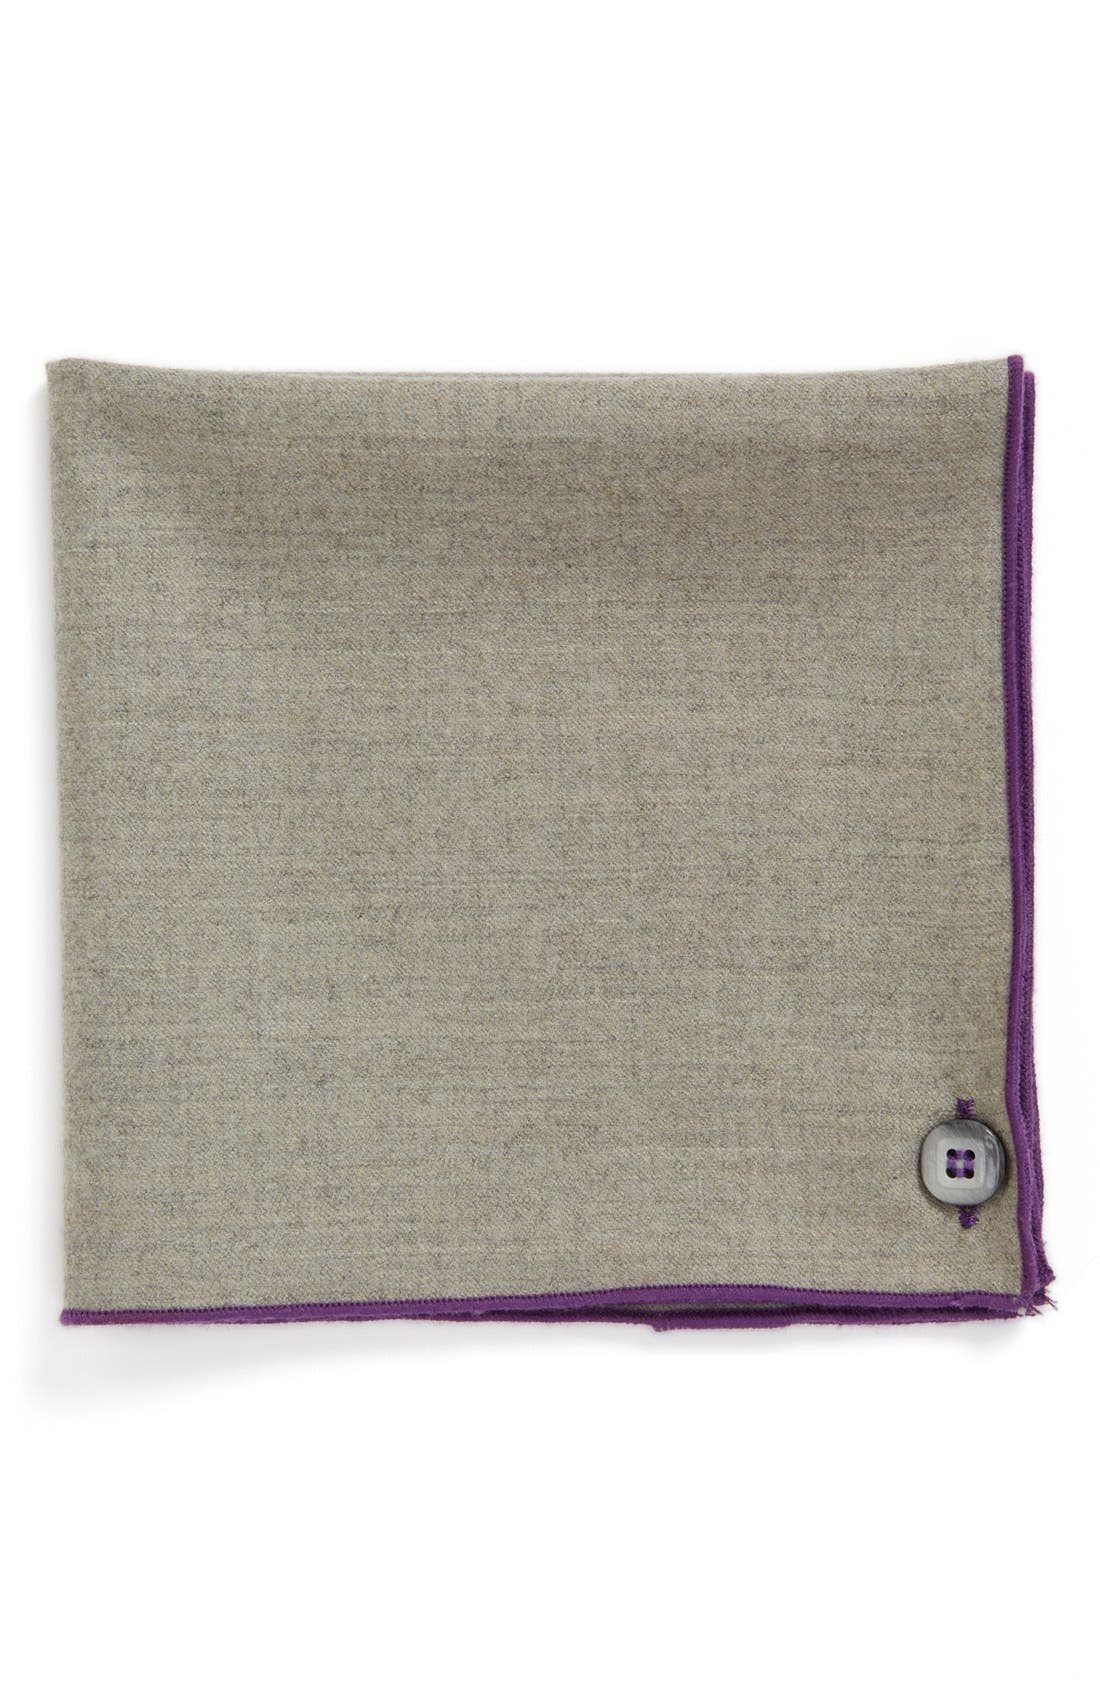 Main Image - Armstrong & Wilson Wool & Cashmere Pocket Square